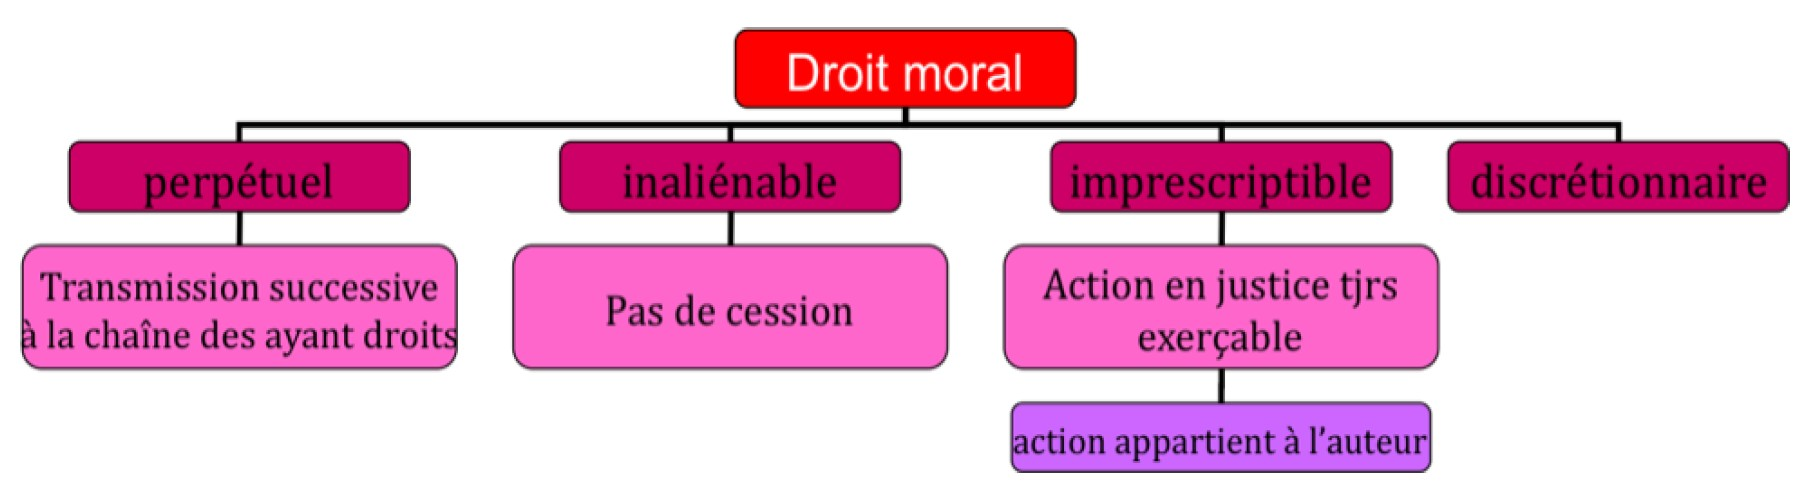 Droit Moral Pearltrees